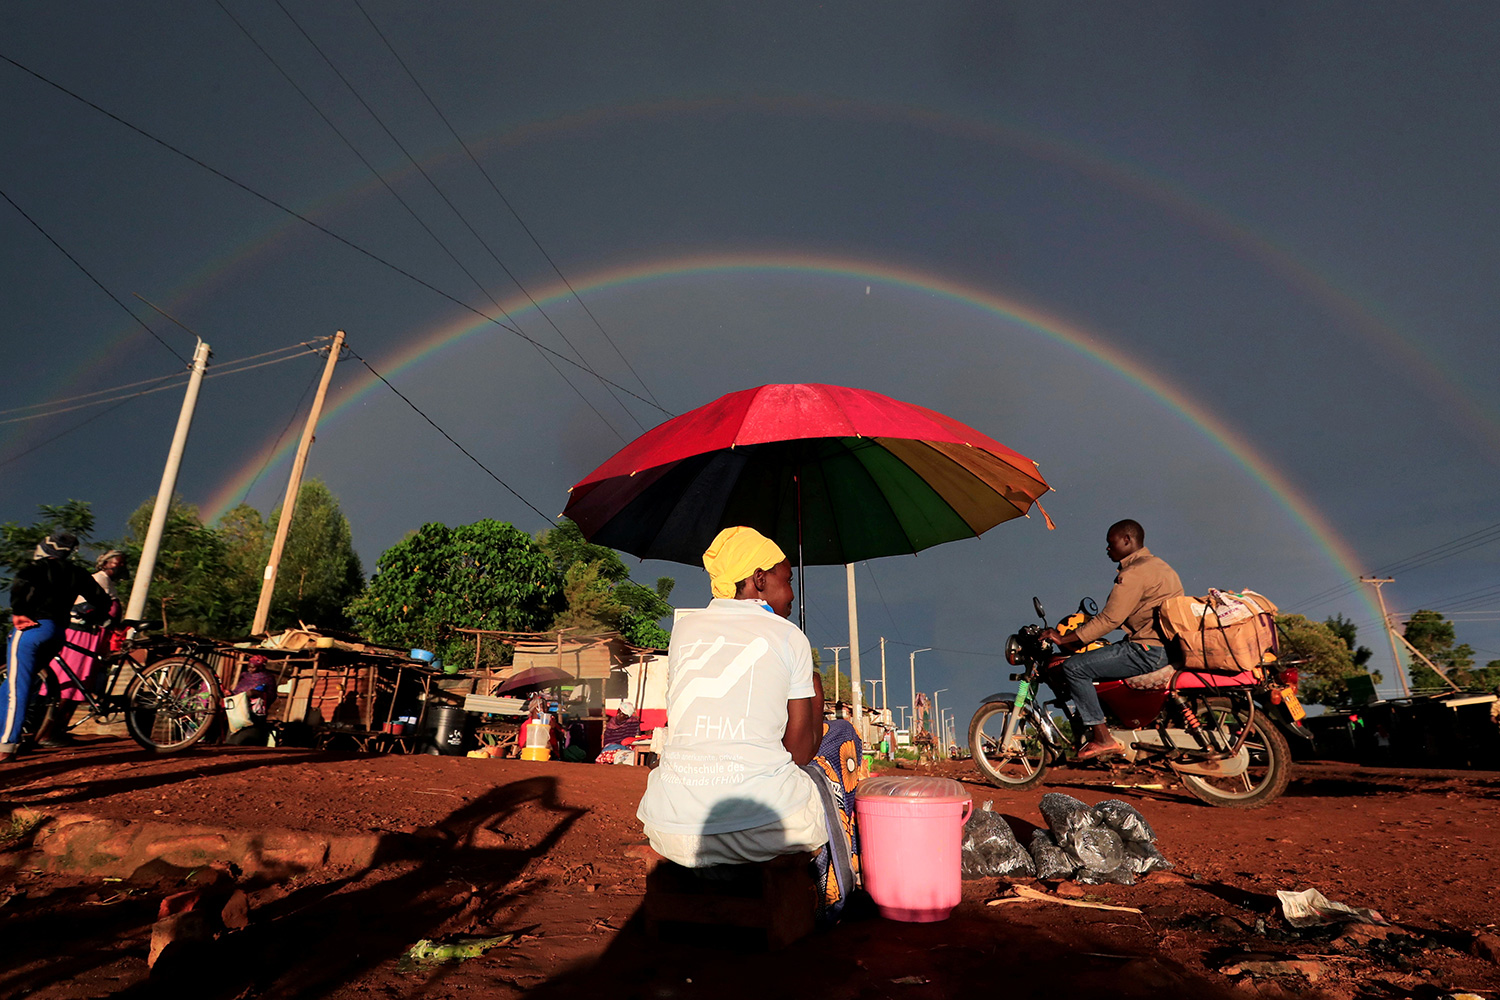 A double rainbow is seen above a woman holding an umbrella and selling snacks along the road in Siaya County, Kenya, on May 3, 2020, in the midst of the coronavirus pandemic. This is a spectacular photo that shows a woman under a bright red umbrella from behind as she is sitting on the side of the road greeting passer-bys with a full-double rainbow highlighting a storm-darkened sky in the distance. REUTERS/Thomas Mukoya